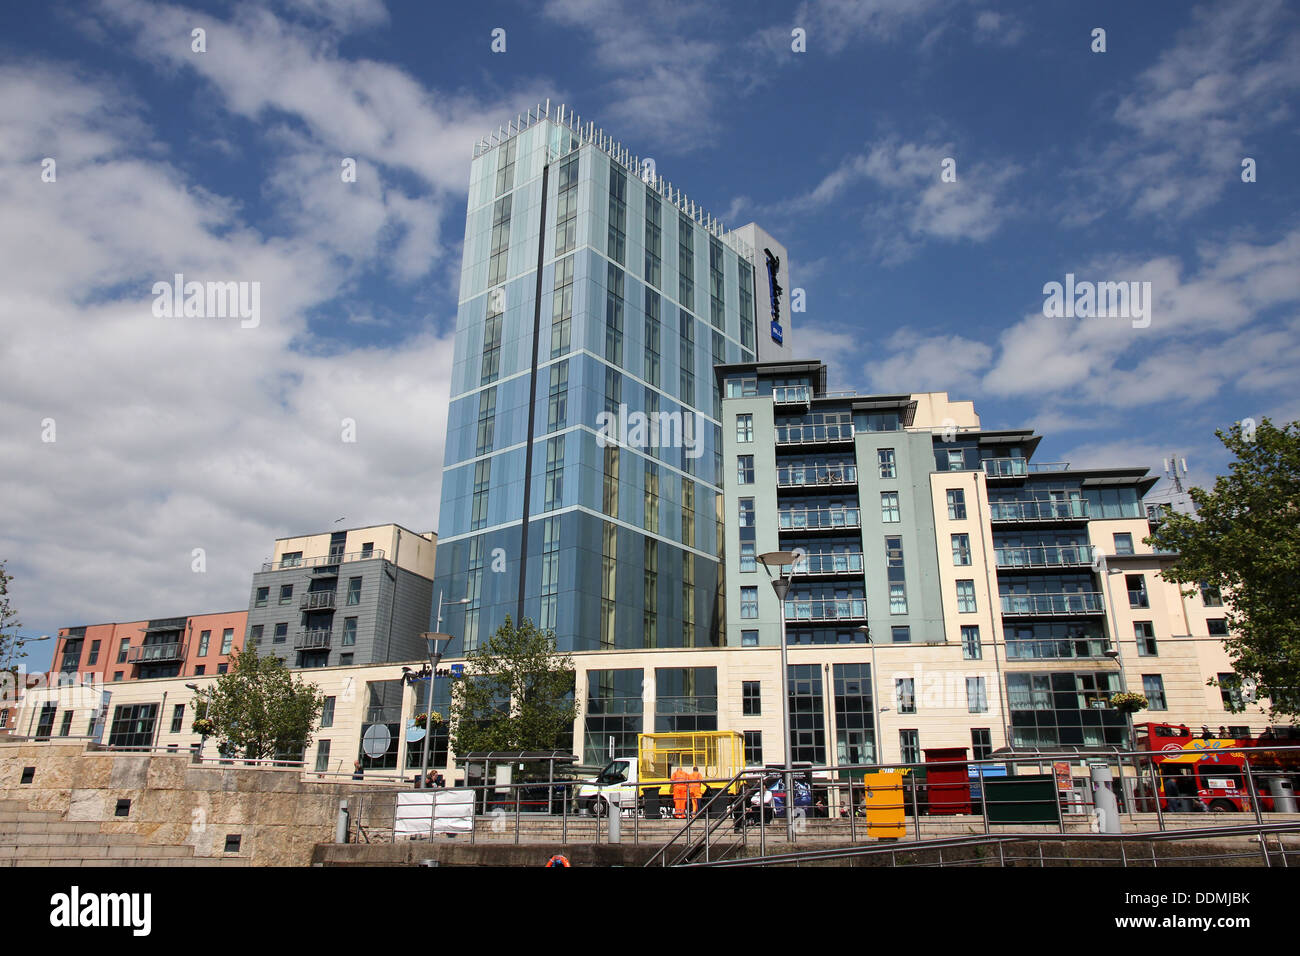 The Radisson Blu hotel viewed from below on a beautiful sunny day. - Stock Image